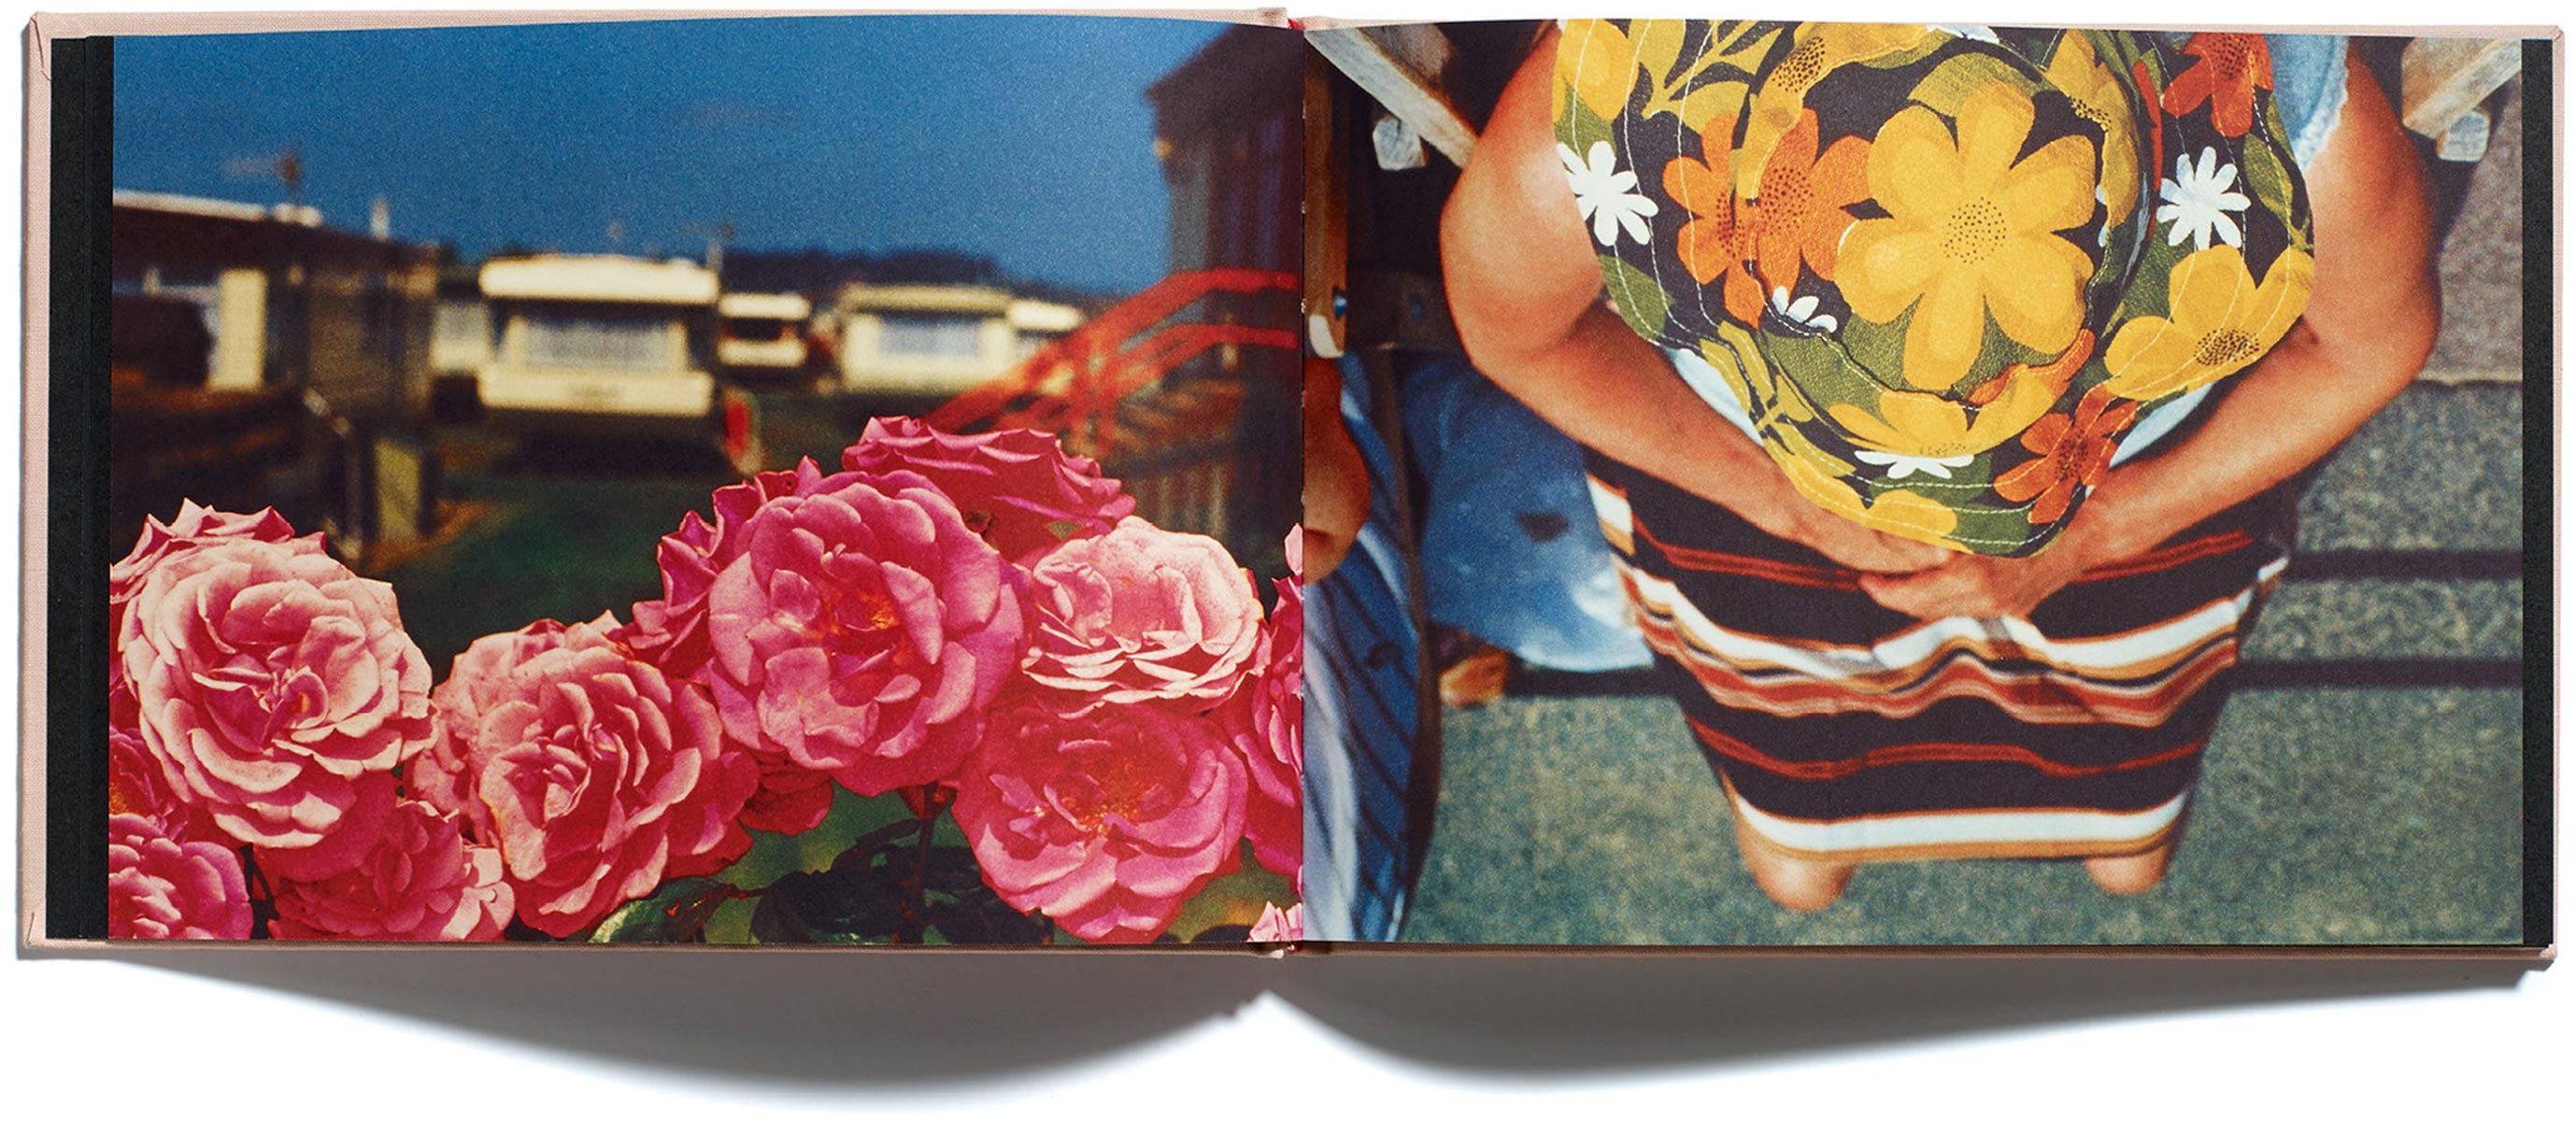 Browns Editions, Browns Editions Publishing, Browns Editions Books, Browns Editions Martin Parr, Browns Editions Flowers, Browns Editions Martin Parr Flowers